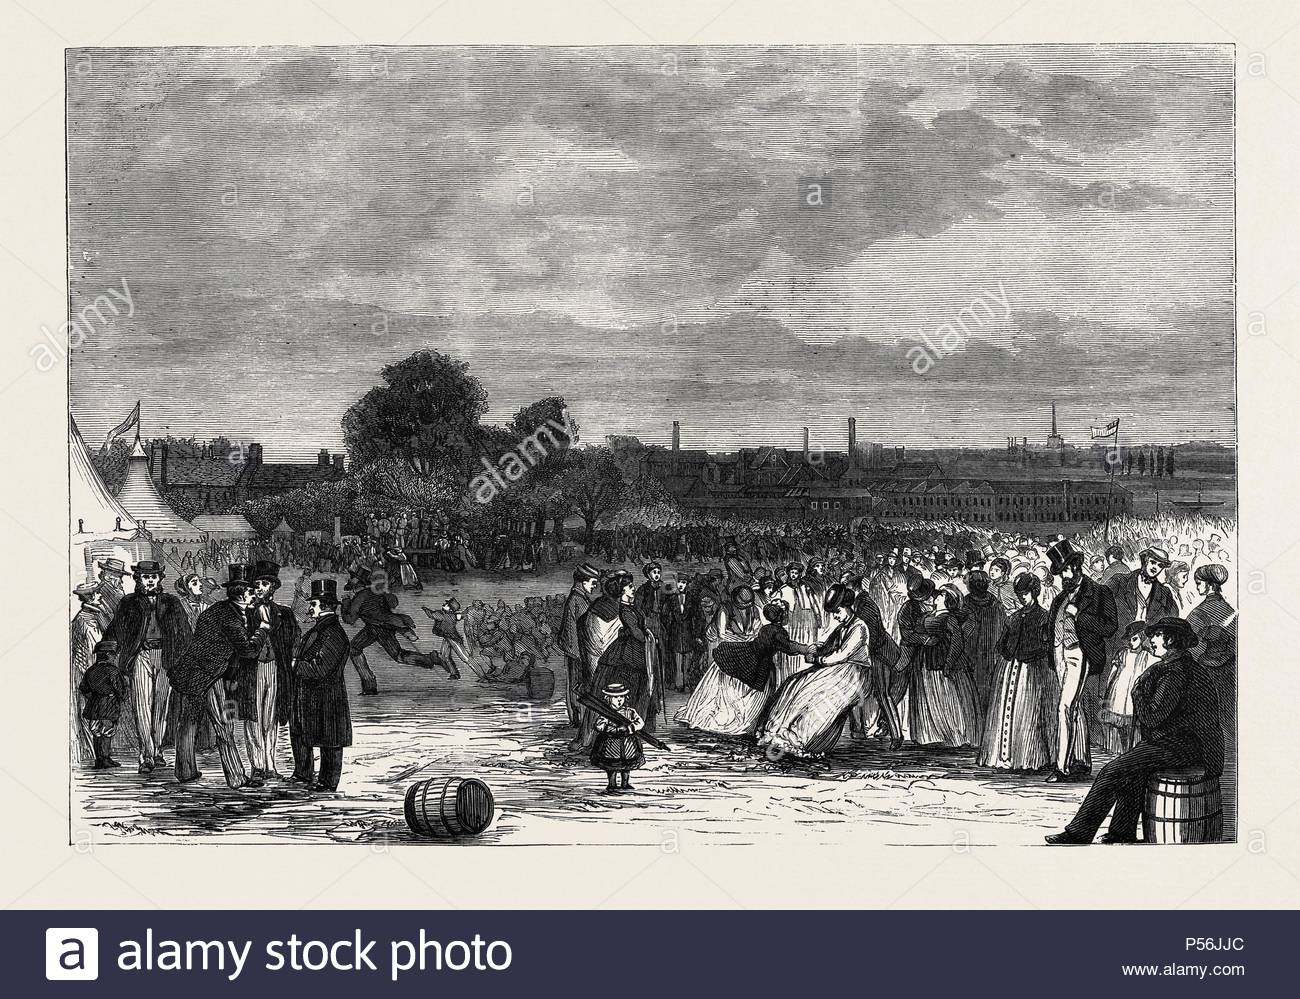 WHITSUNTIDE FESTIVAL OF WORKPEOPLE AT NORWICH, UK, 1869. - Stock Image